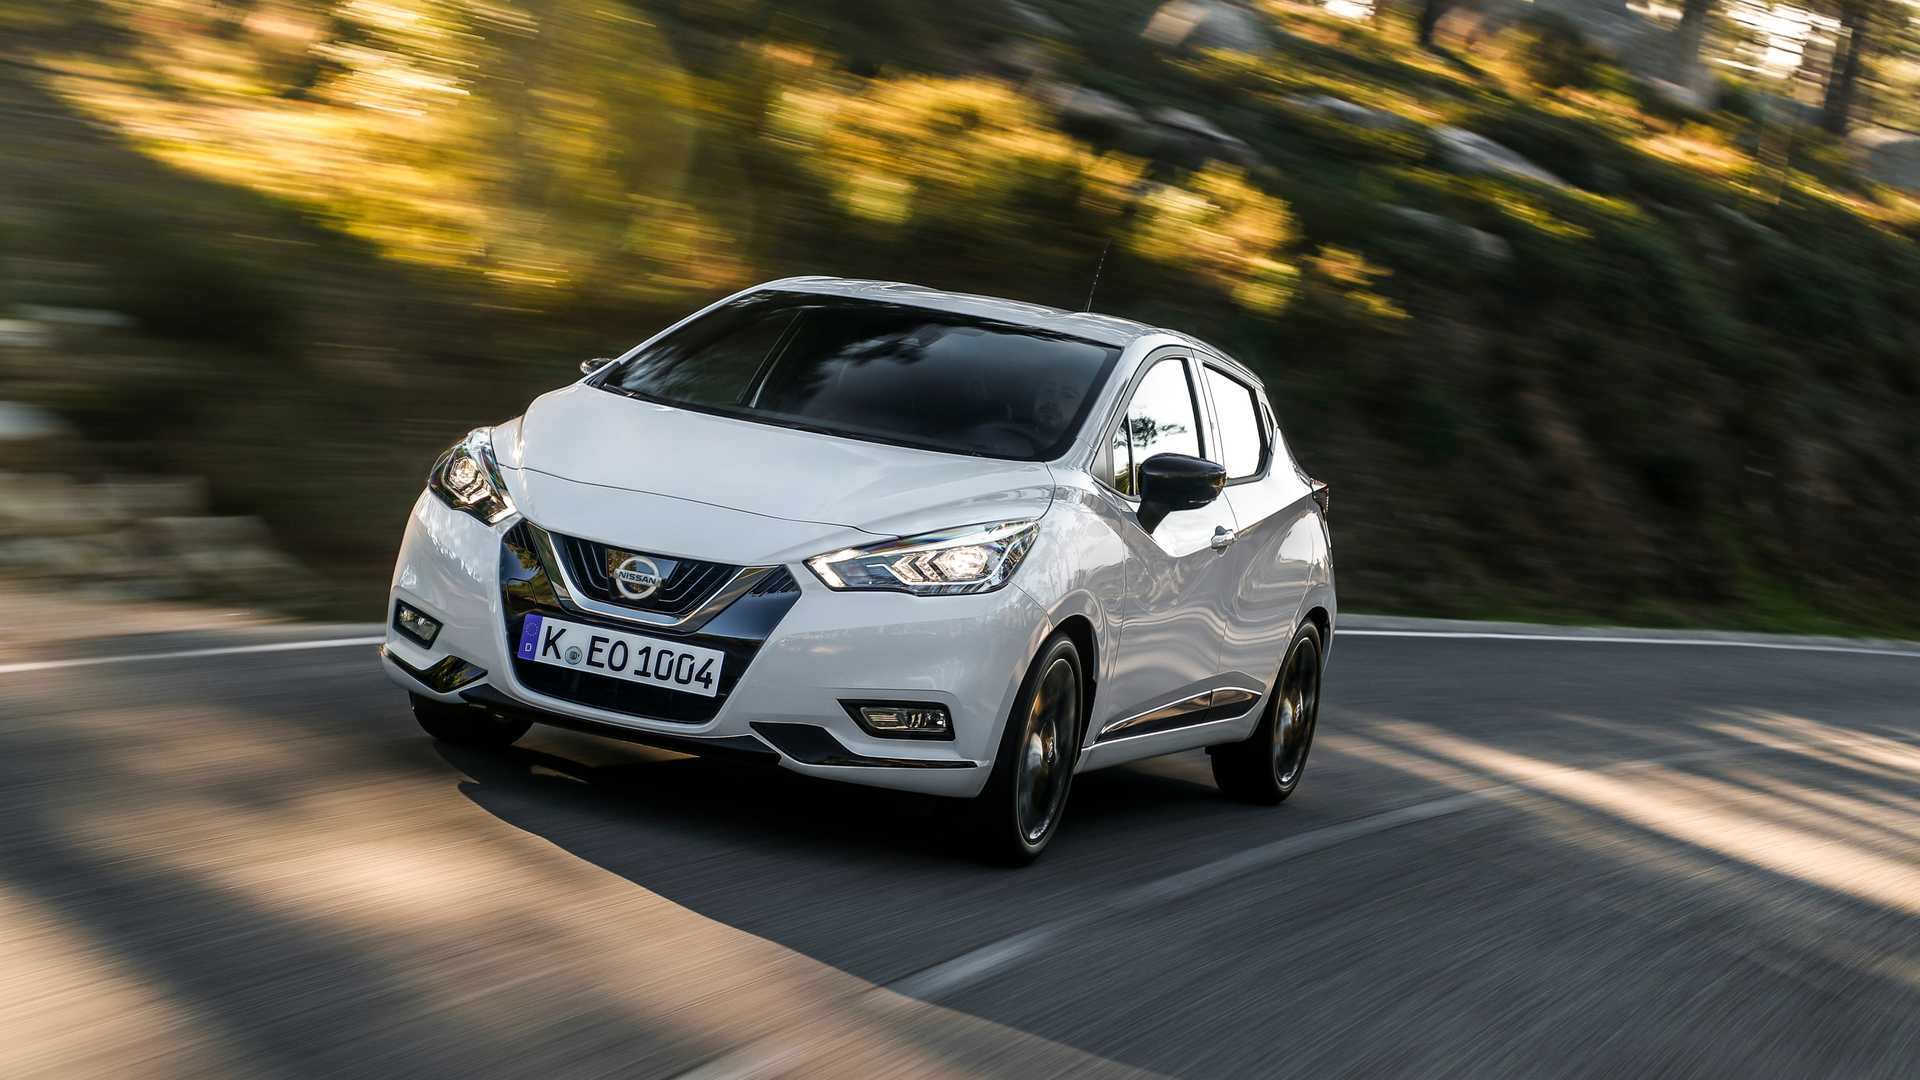 2020 Nissan Micra: Review, Specs & Price in UAE | AutoDrift.ae